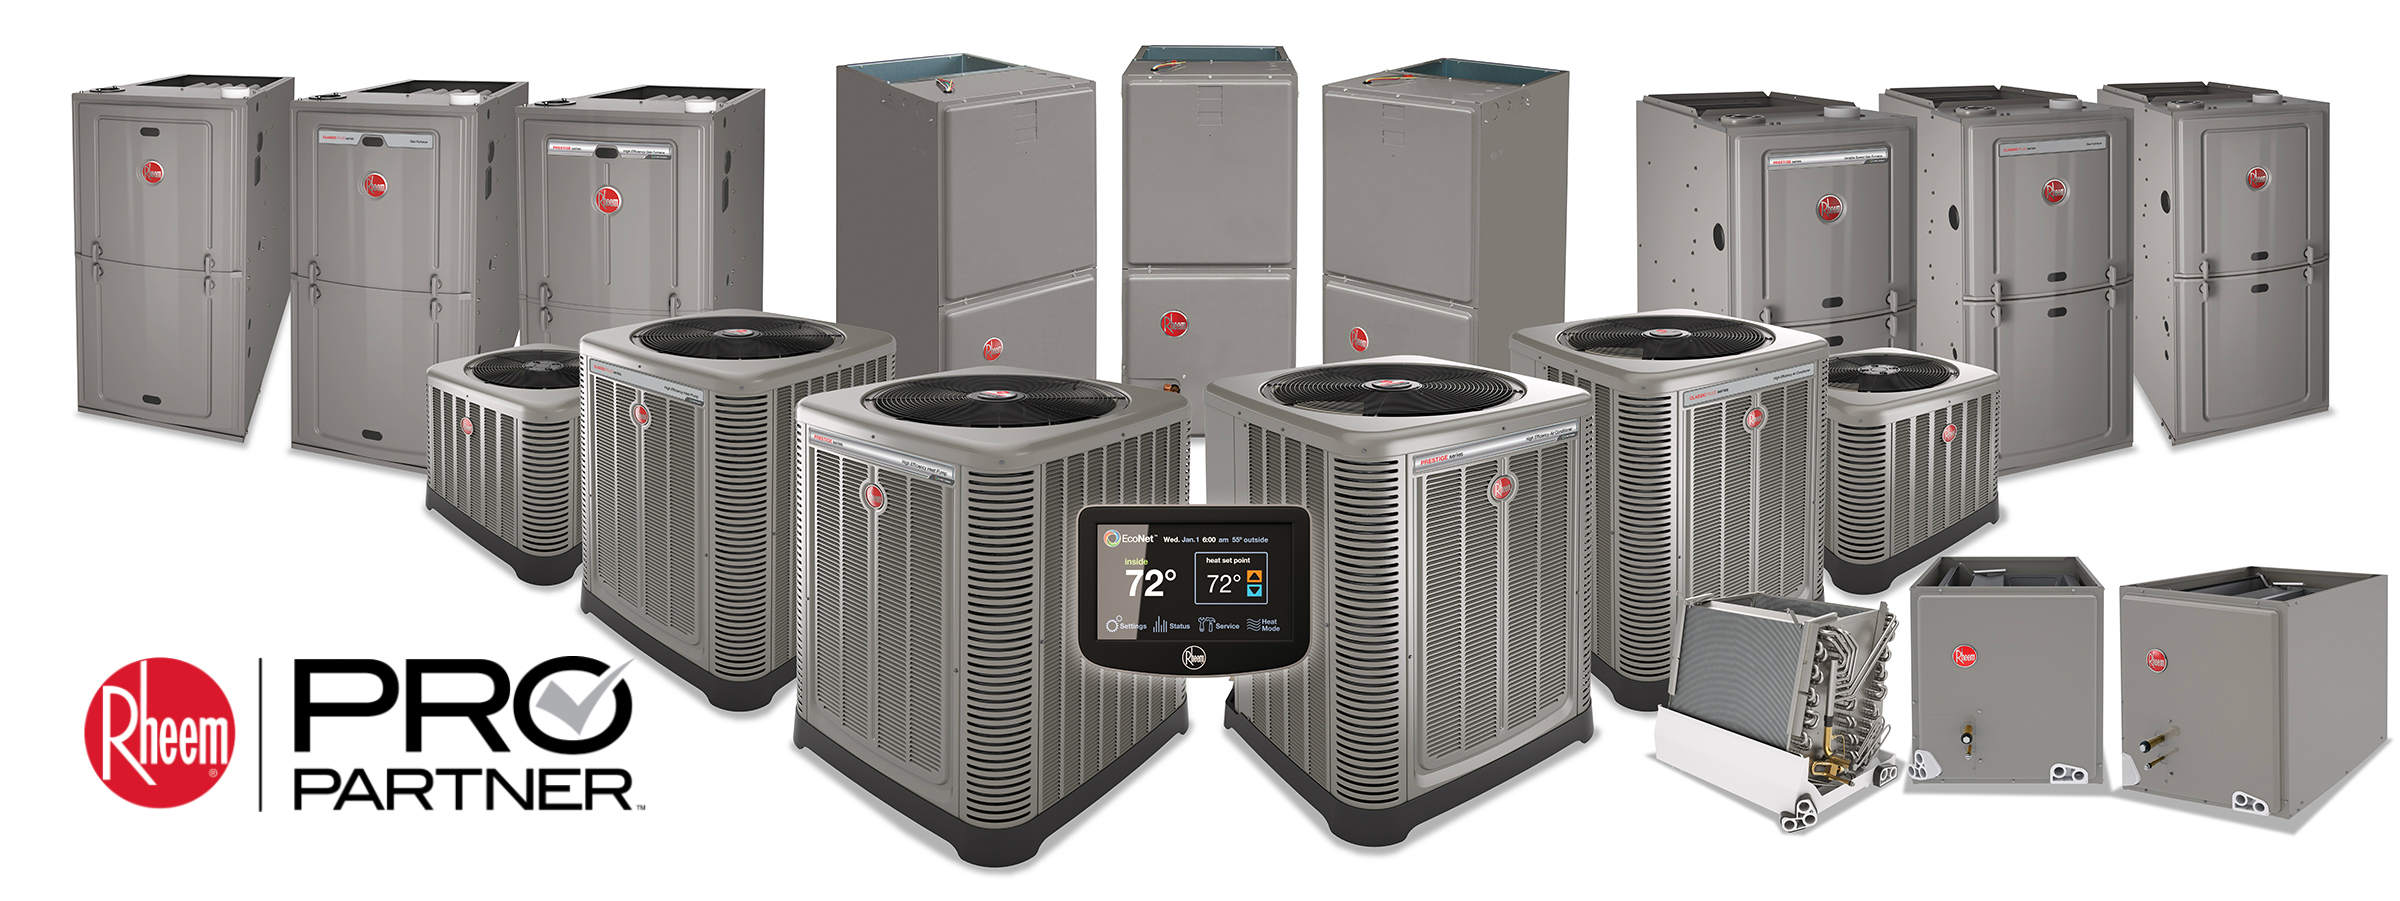 rheem-new-air-conditioner-systems-